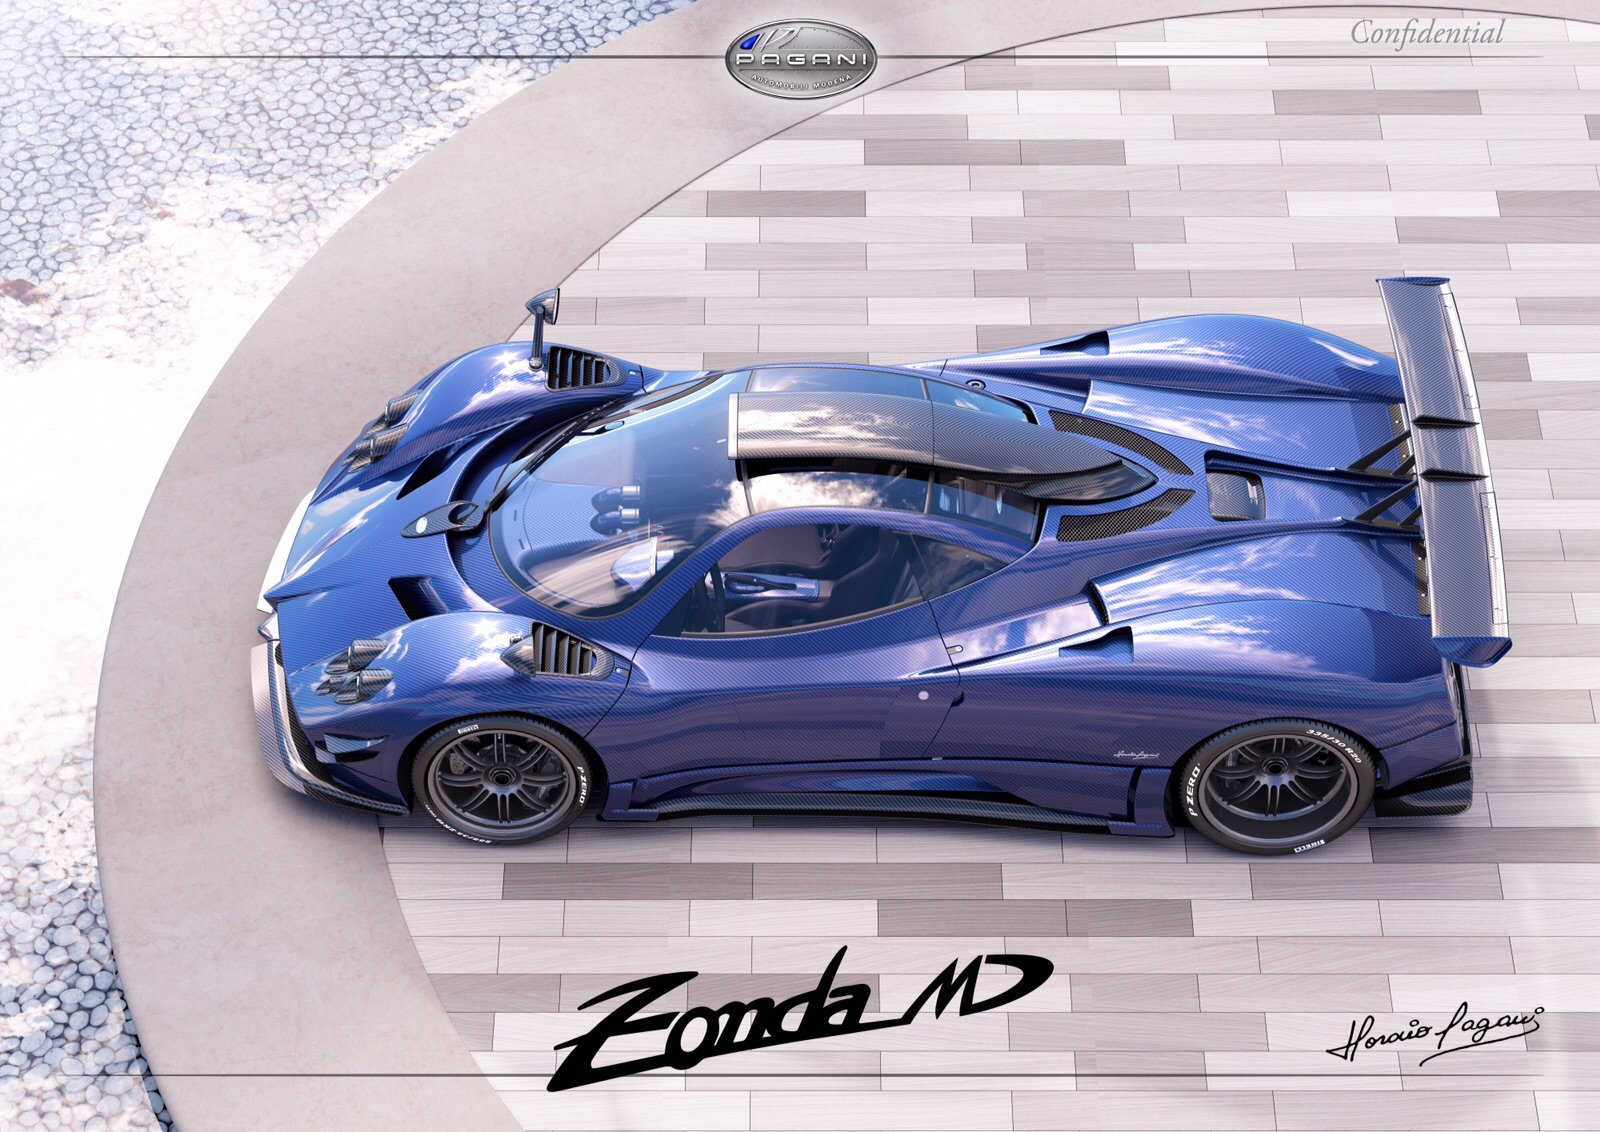 prototype 0 prototype 0 reveals the pagani zonda md